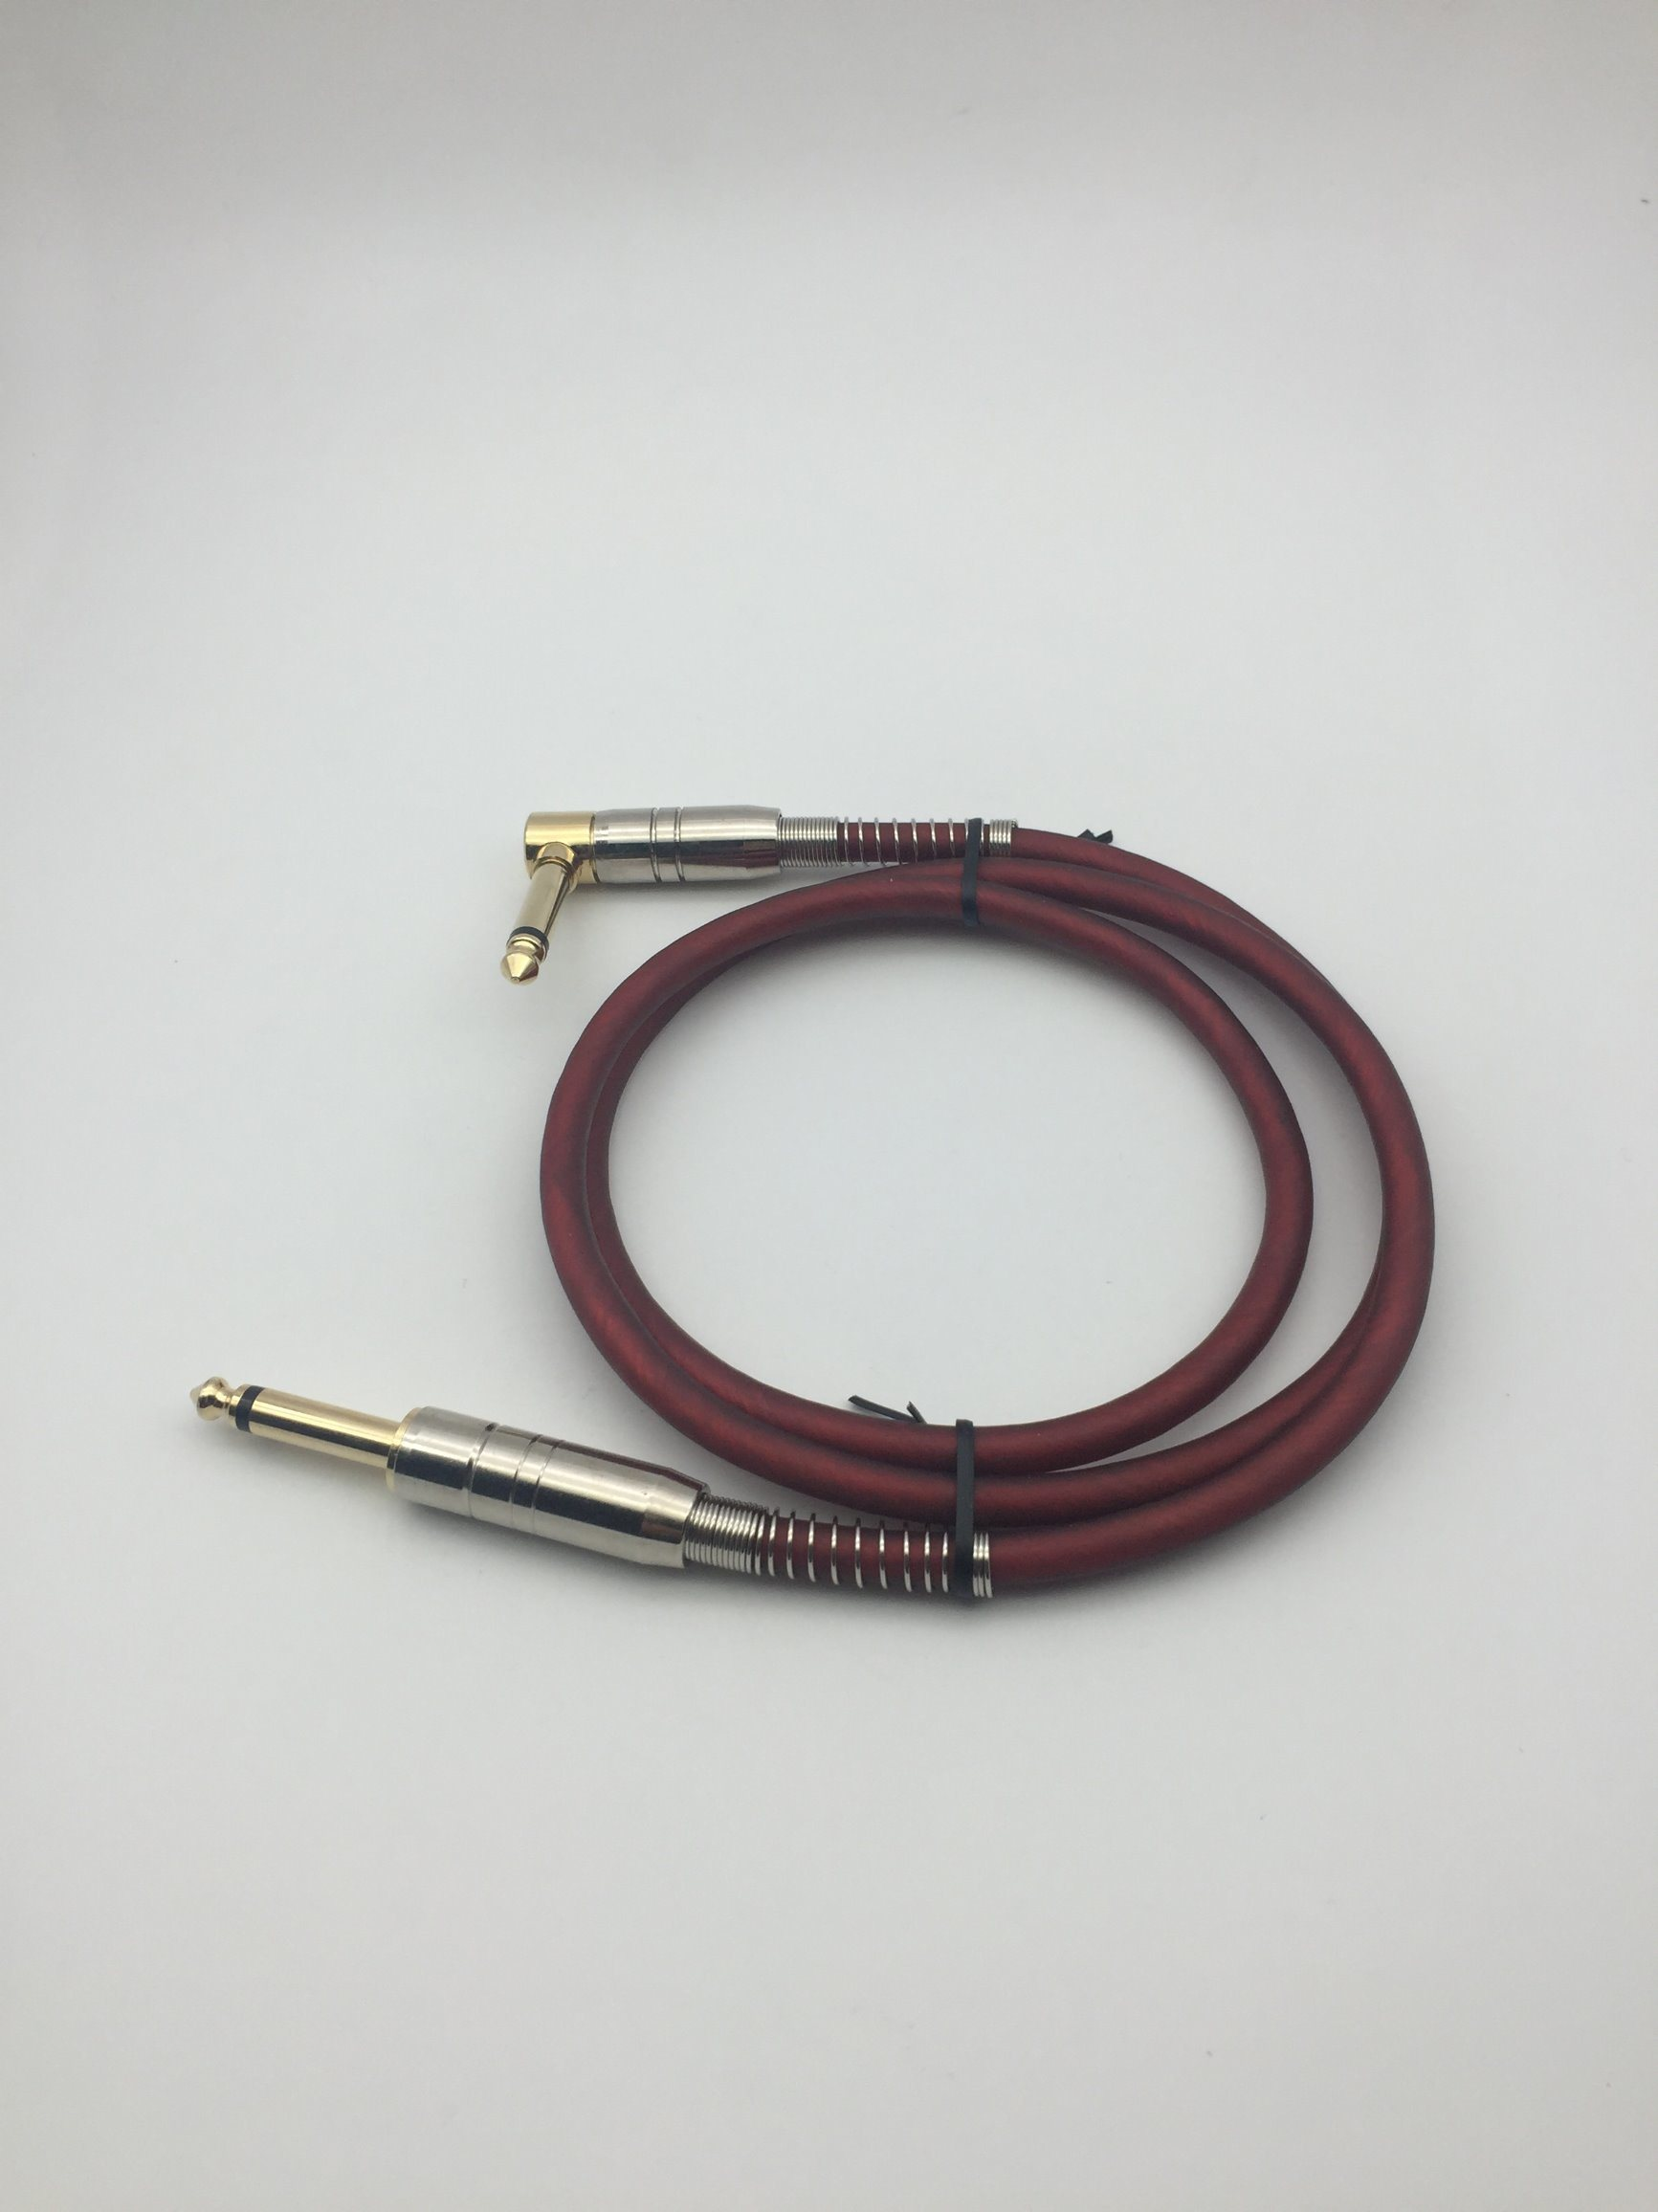 6.35mm Cable, 6.35mm (1/4 inch) to 6.35mm Metal Plug Audio Cable, Microphone Cable